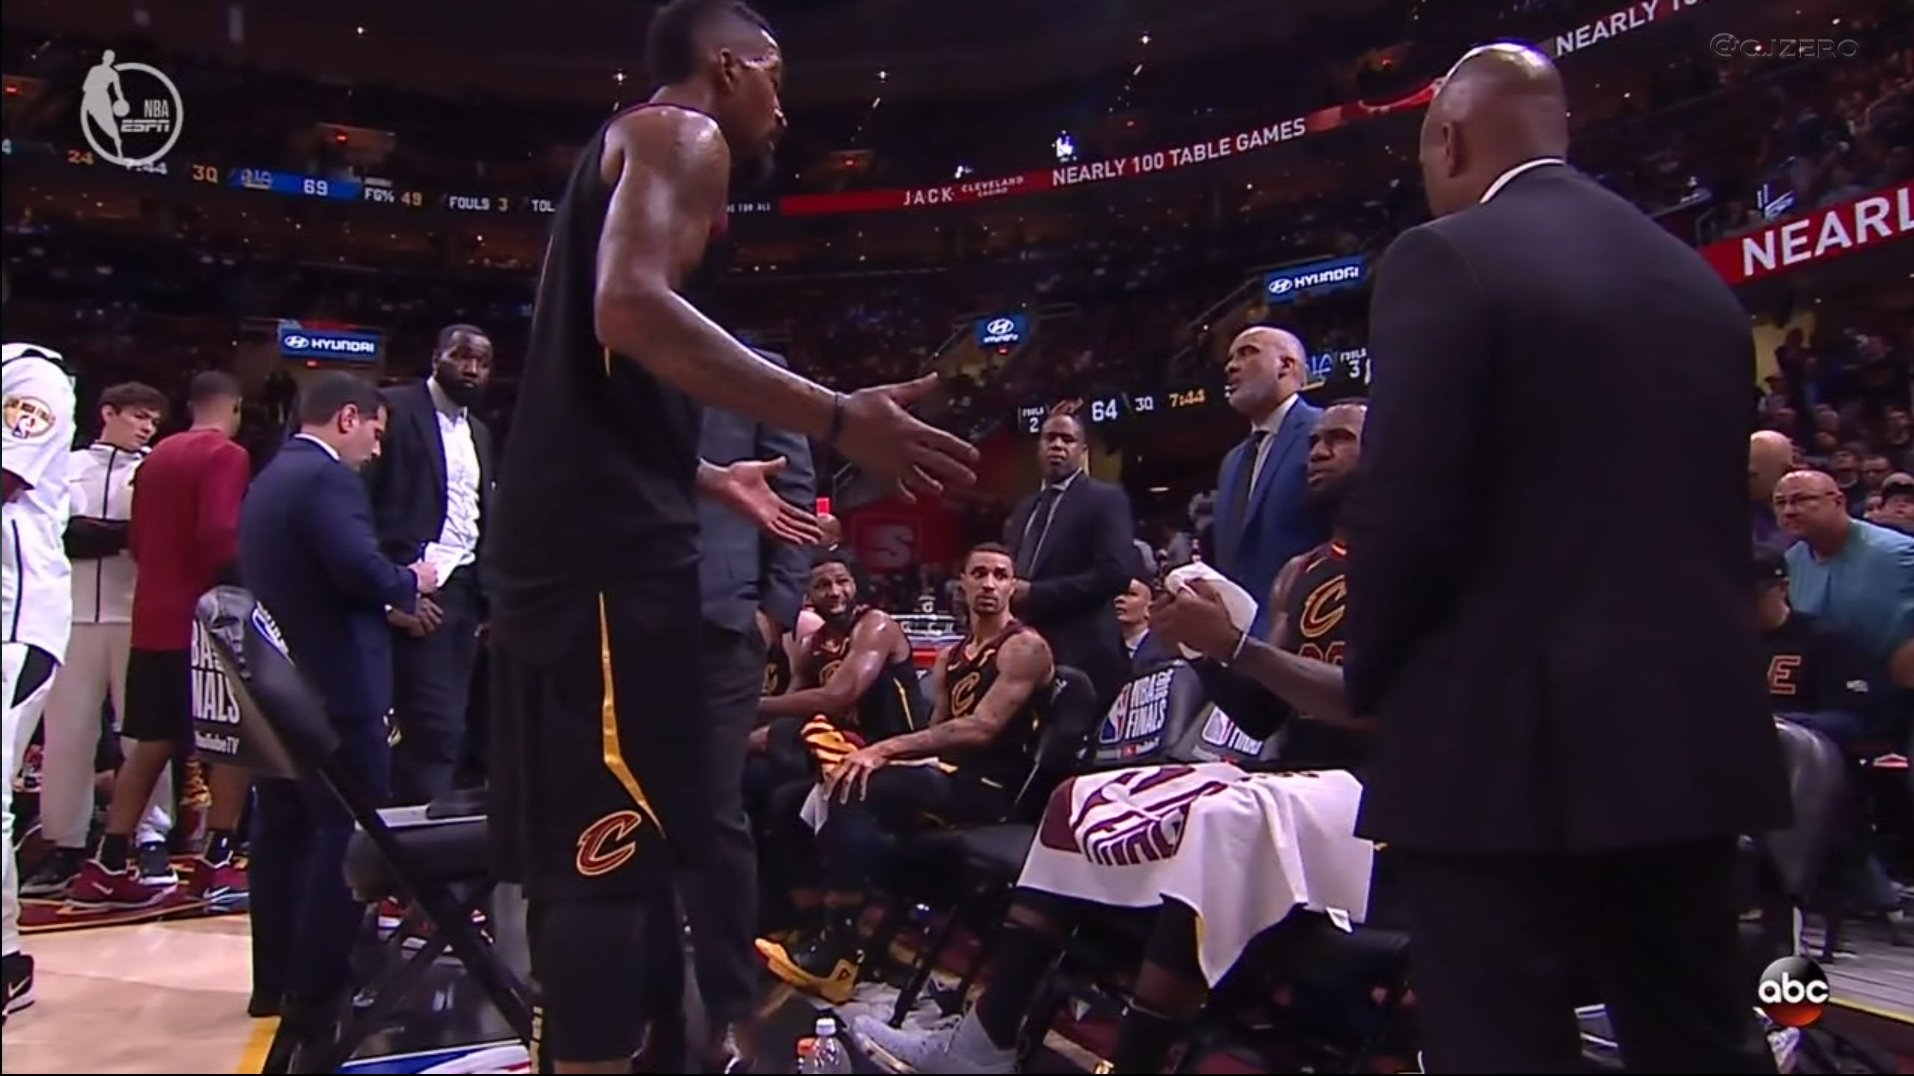 'Bron, I swear I know what the score is. Swear.' https://t.co/kOX1Qy3s0K